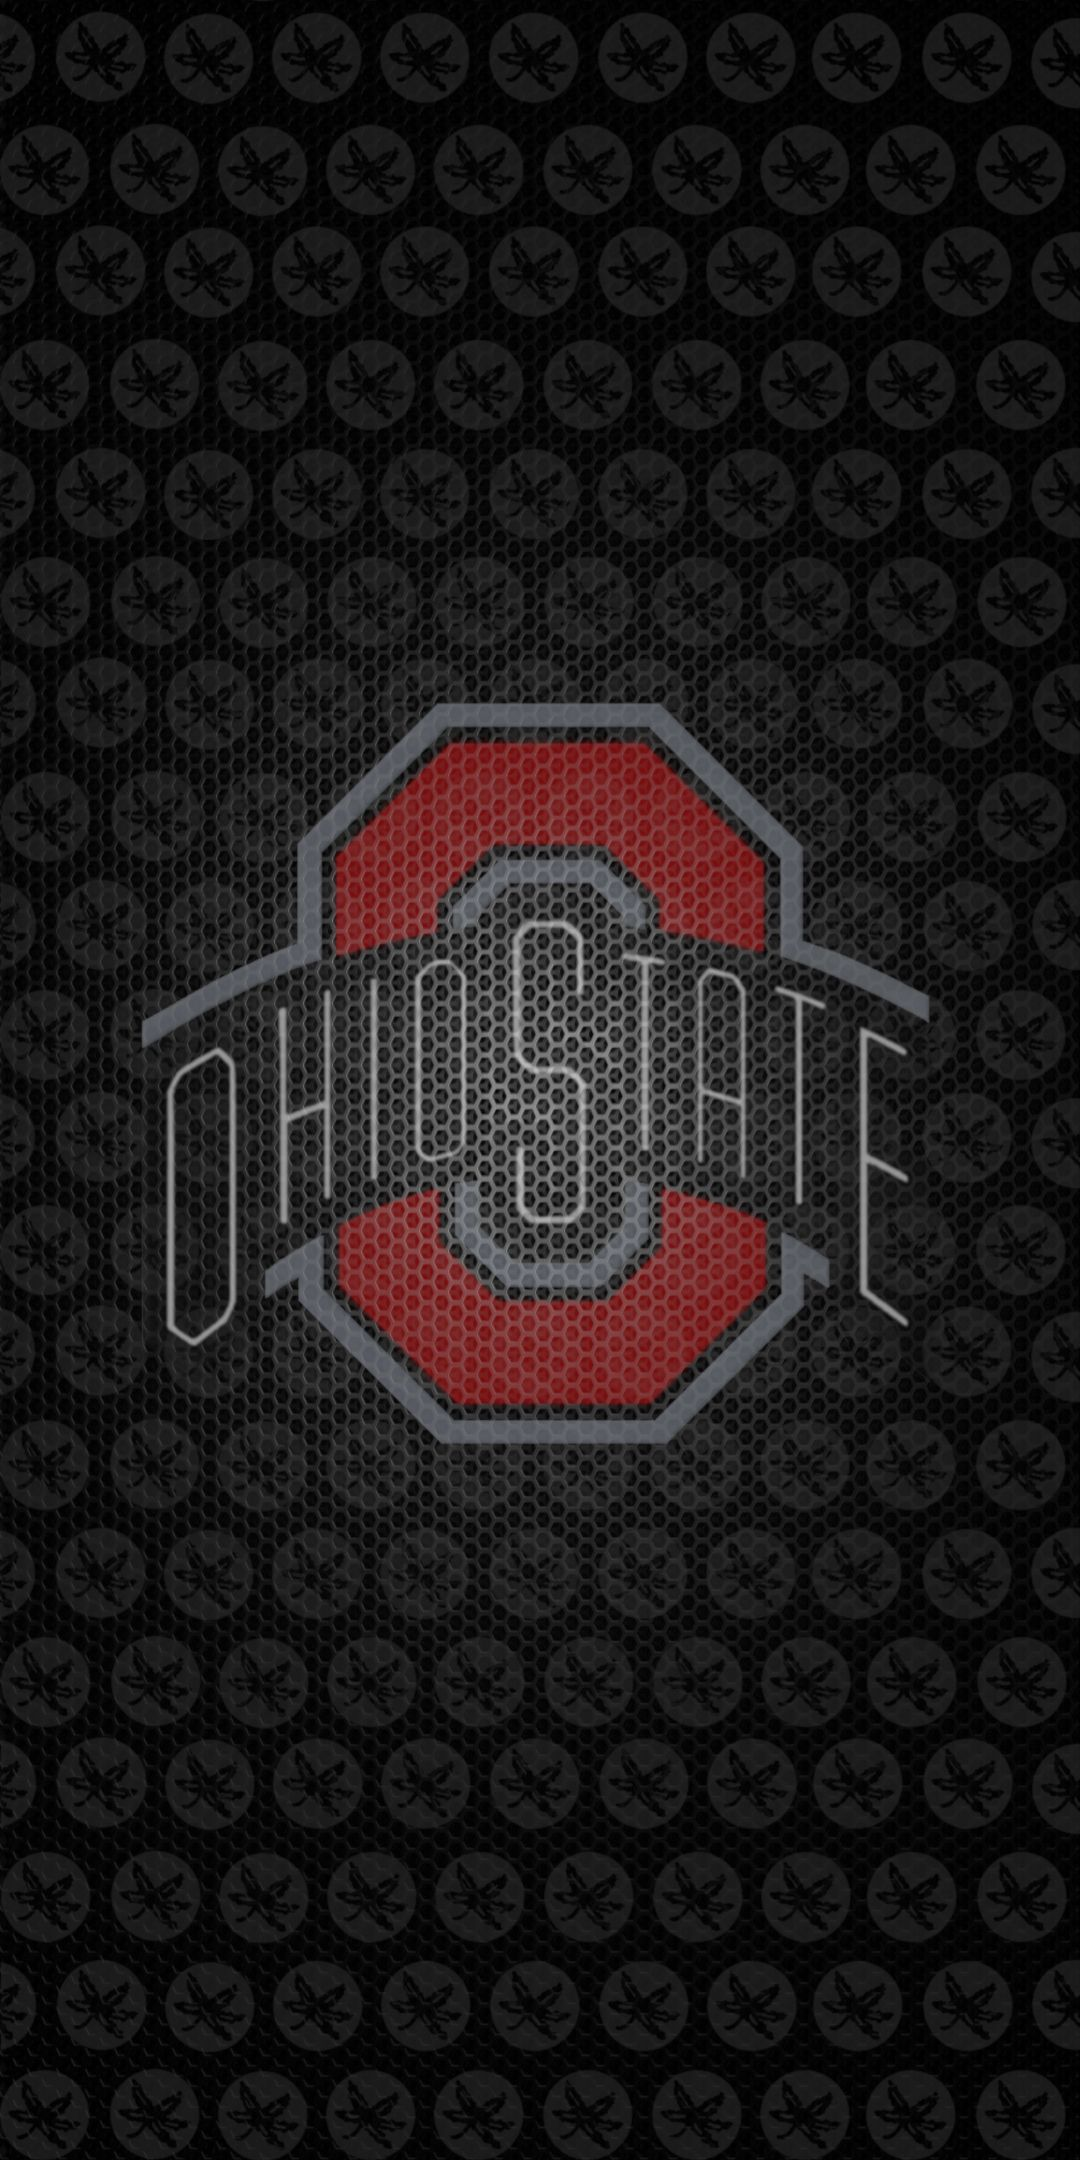 Osu Wallpaper 150 For Moto G6 Plus Ohio State Phone Wallpapers